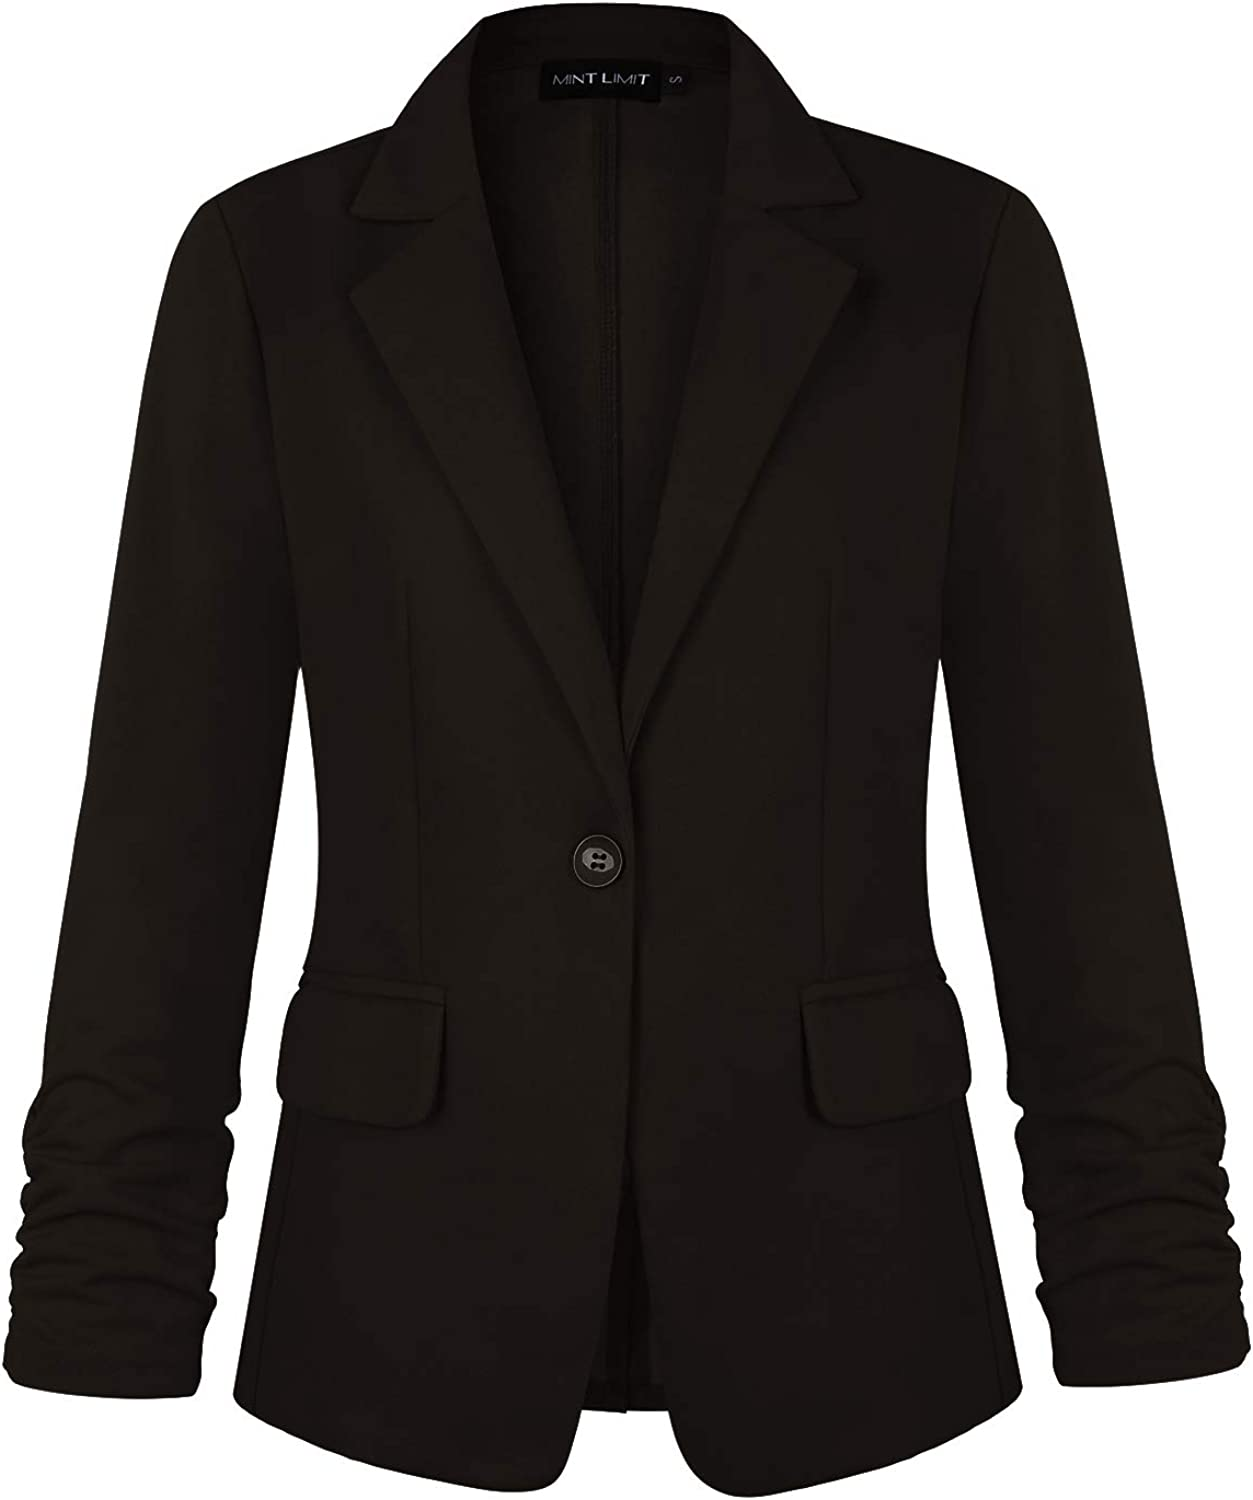 MINTLIMIT Women's 3/4 Ruched Sleeve One Button Stretchy Work Blazer with Pockets